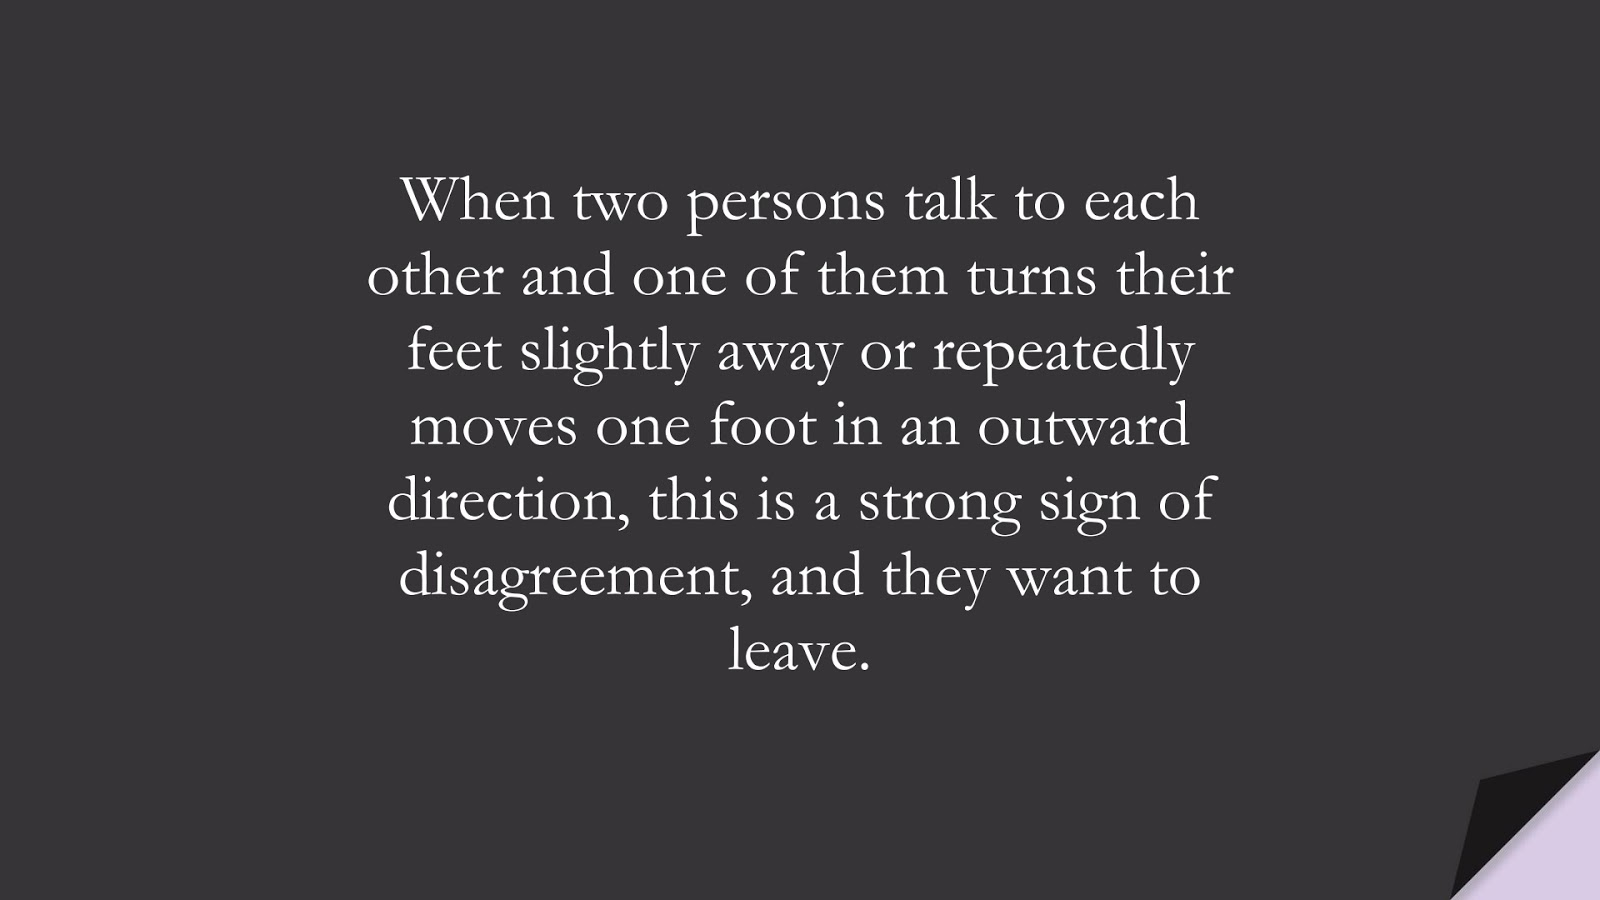 When two persons talk to each other and one of them turns their feet slightly away or repeatedly moves one foot in an outward direction, this is a strong sign of disagreement, and they want to leave.FALSE